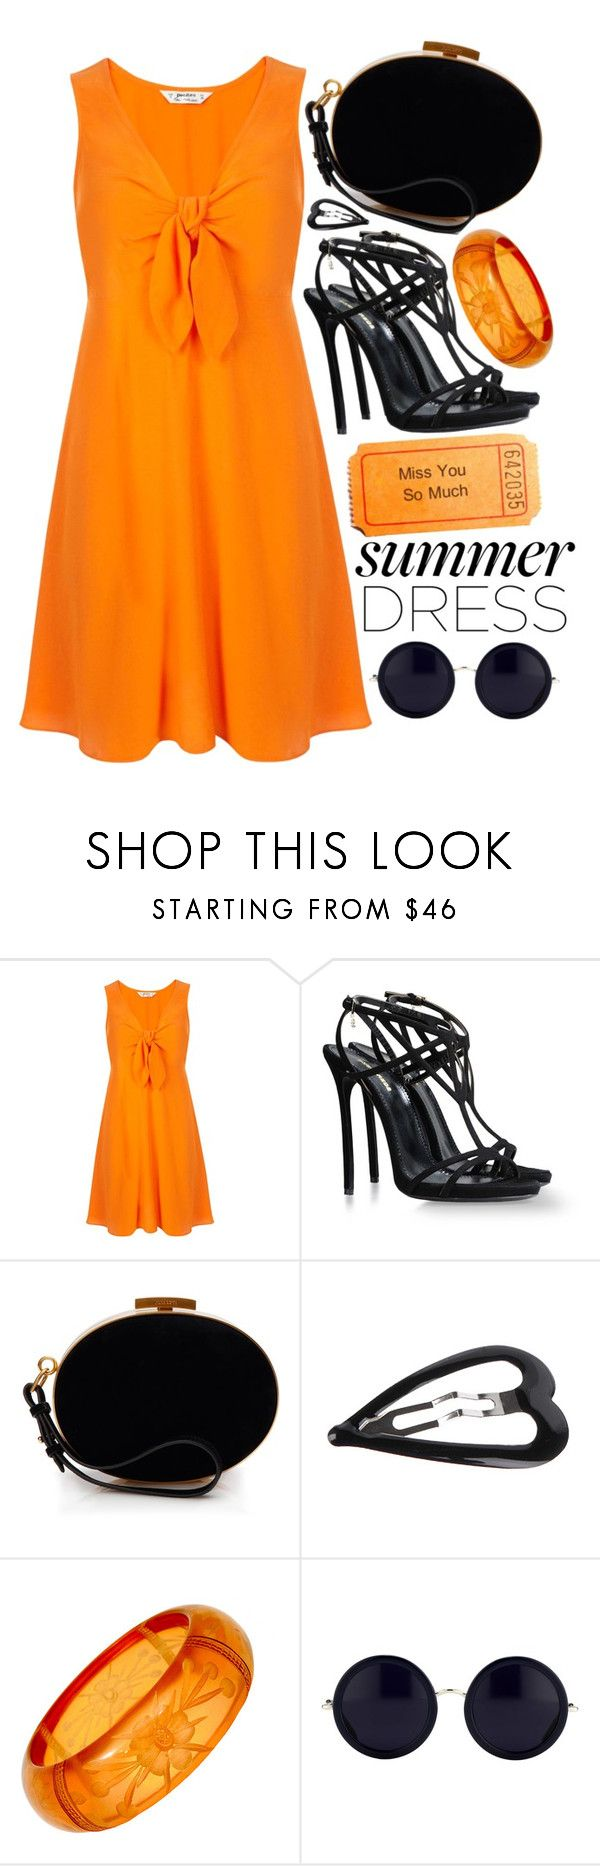 """Orange and Black"" by mormon-girl ❤ liked on Polyvore featuring Miss Selfridge, Dsquared2, Nina Ricci, Forever 21, The Row, contest, black, orange, sunglasses and summerdress"